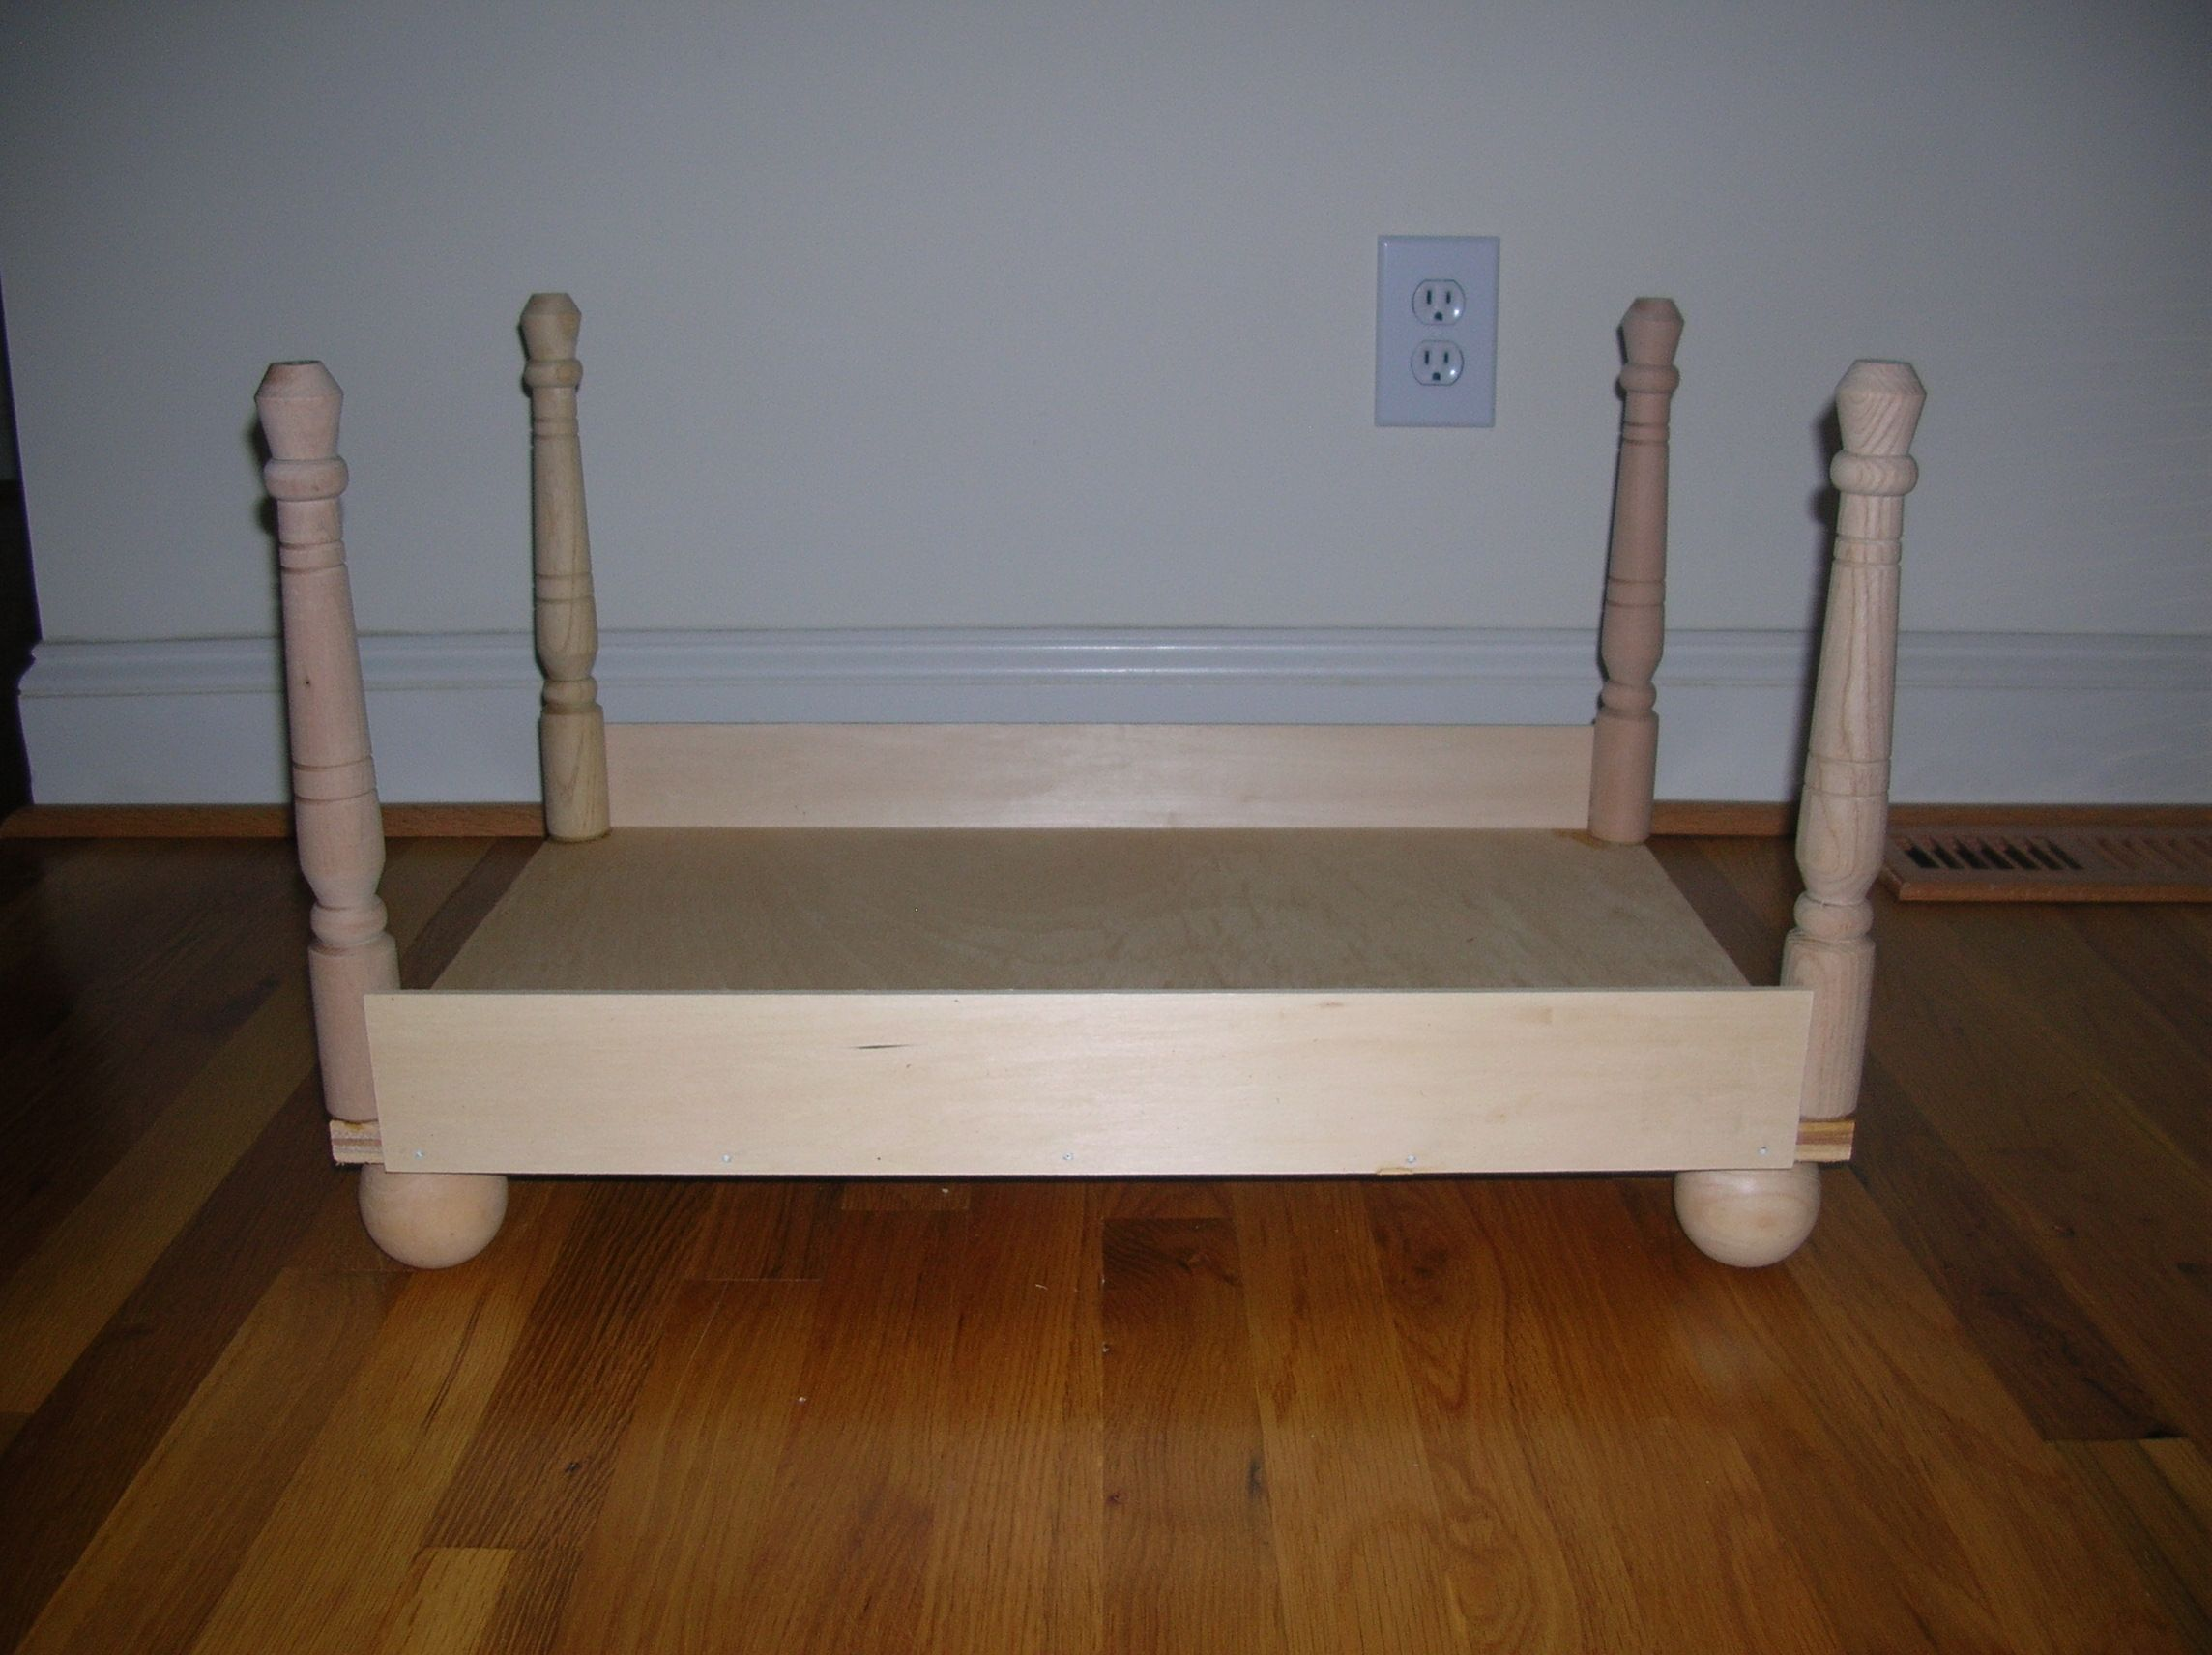 Used 1 Sheet Plywood 16 X24 4 Table Legs 2 Wood Sheets 4 X24 And 4 Doll Heads For The Base American Doll Bed Doll Bed Bed